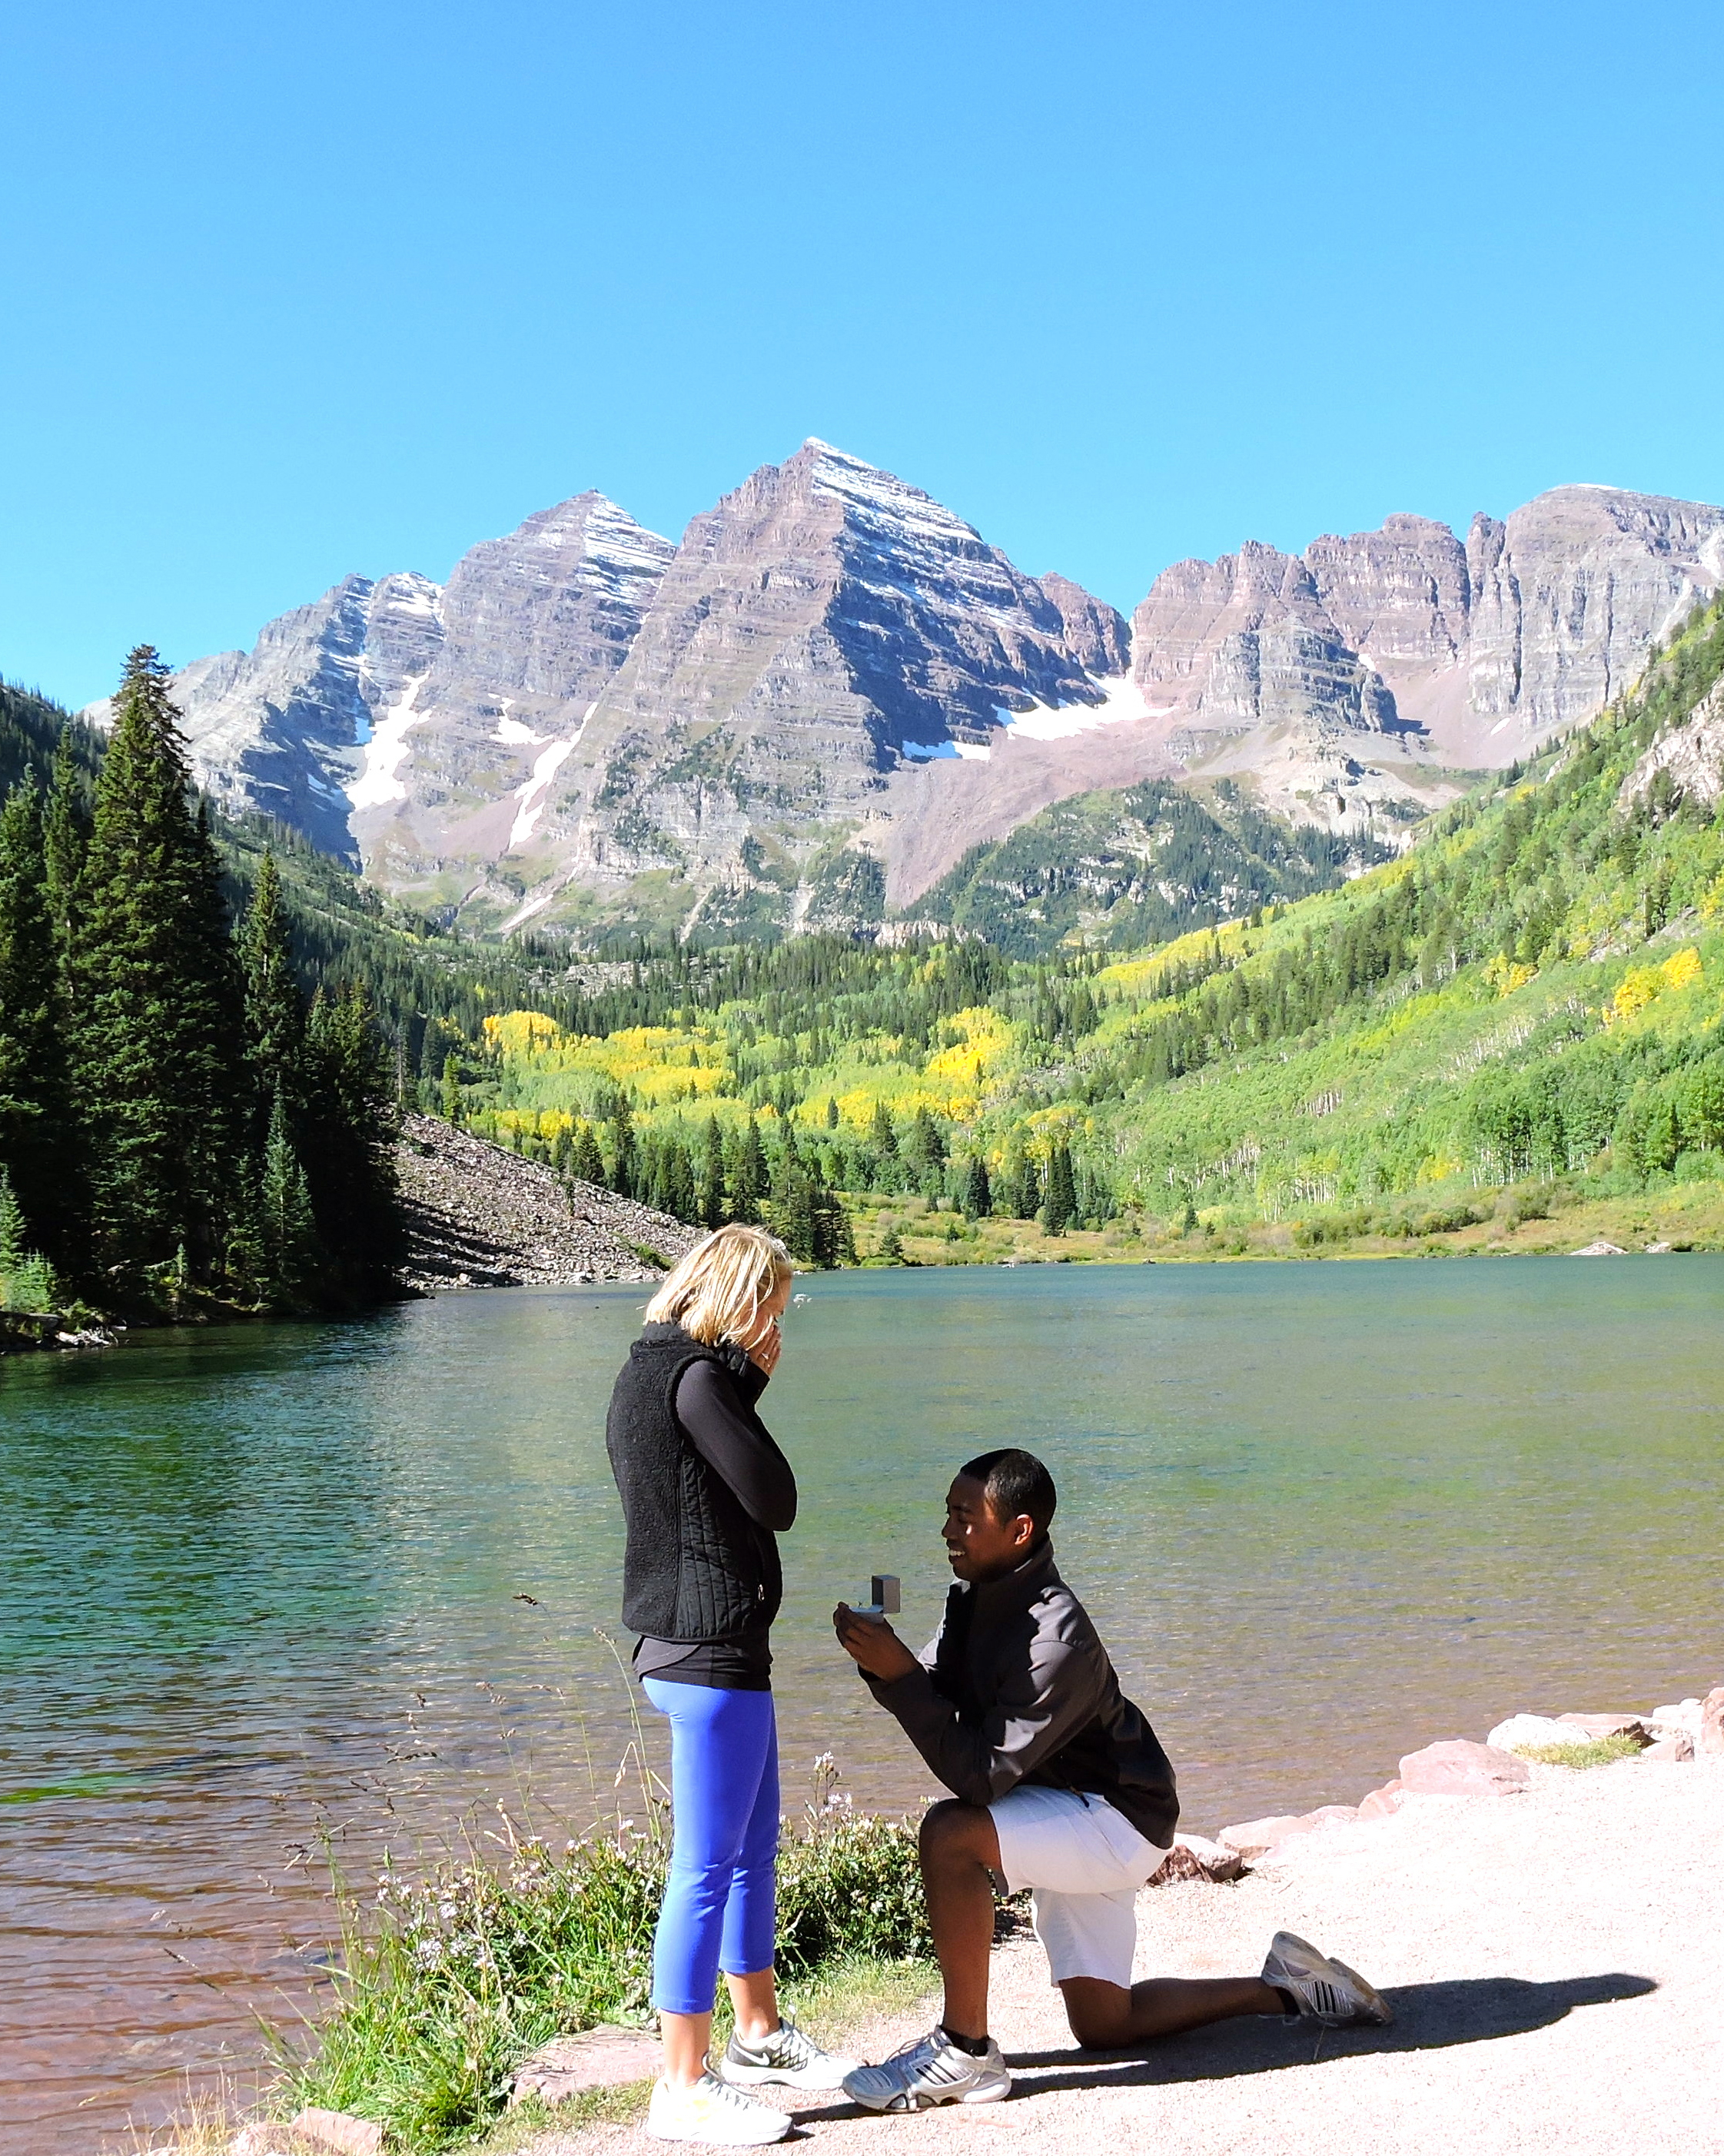 aly-kyle-proposal-3-0115.jpg